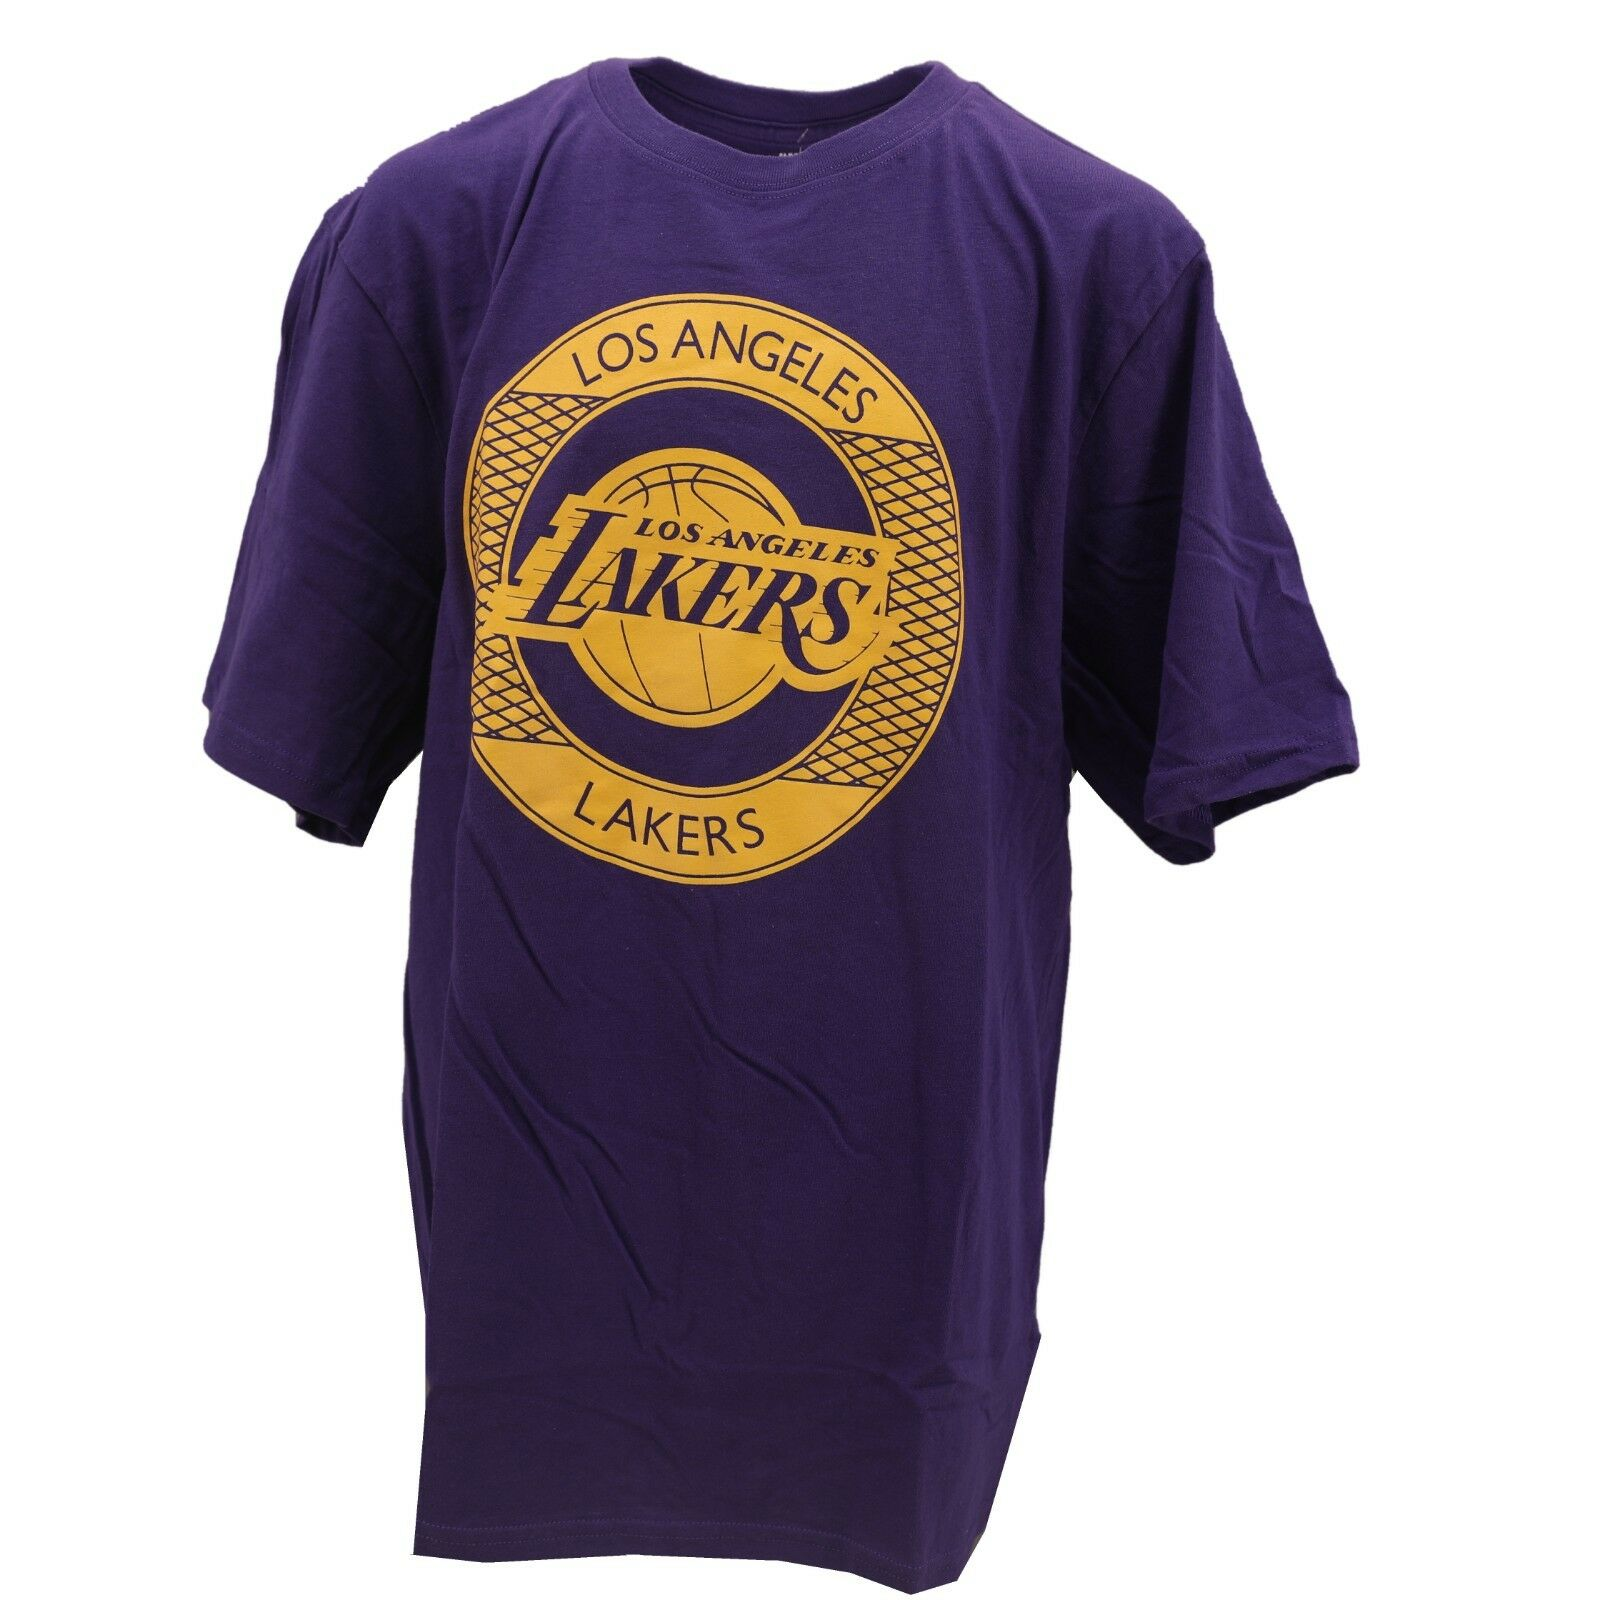 b8cefcf72 Details about Los Angeles Lakers Official NBA Apparel Kids Youth Size T- Shirt New with Tags